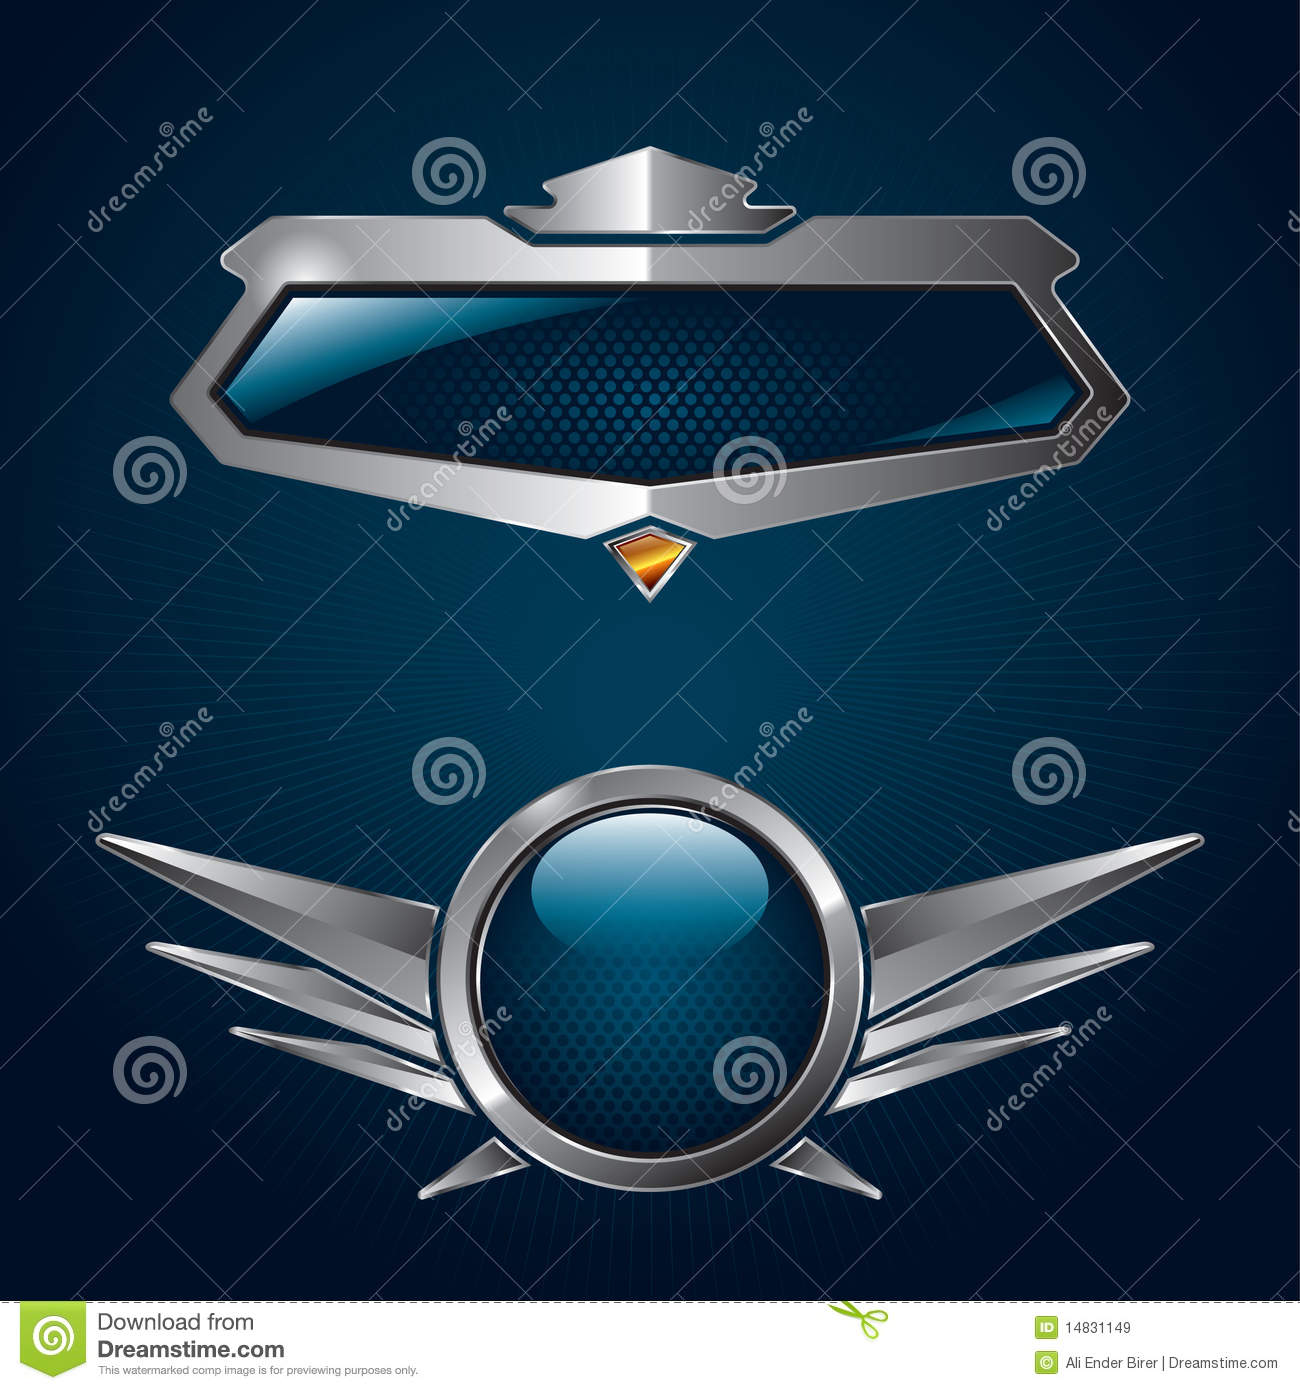 Shield design set royalty free stock photos image 5051988 - Sk Ldar Royaltyfria Bilder